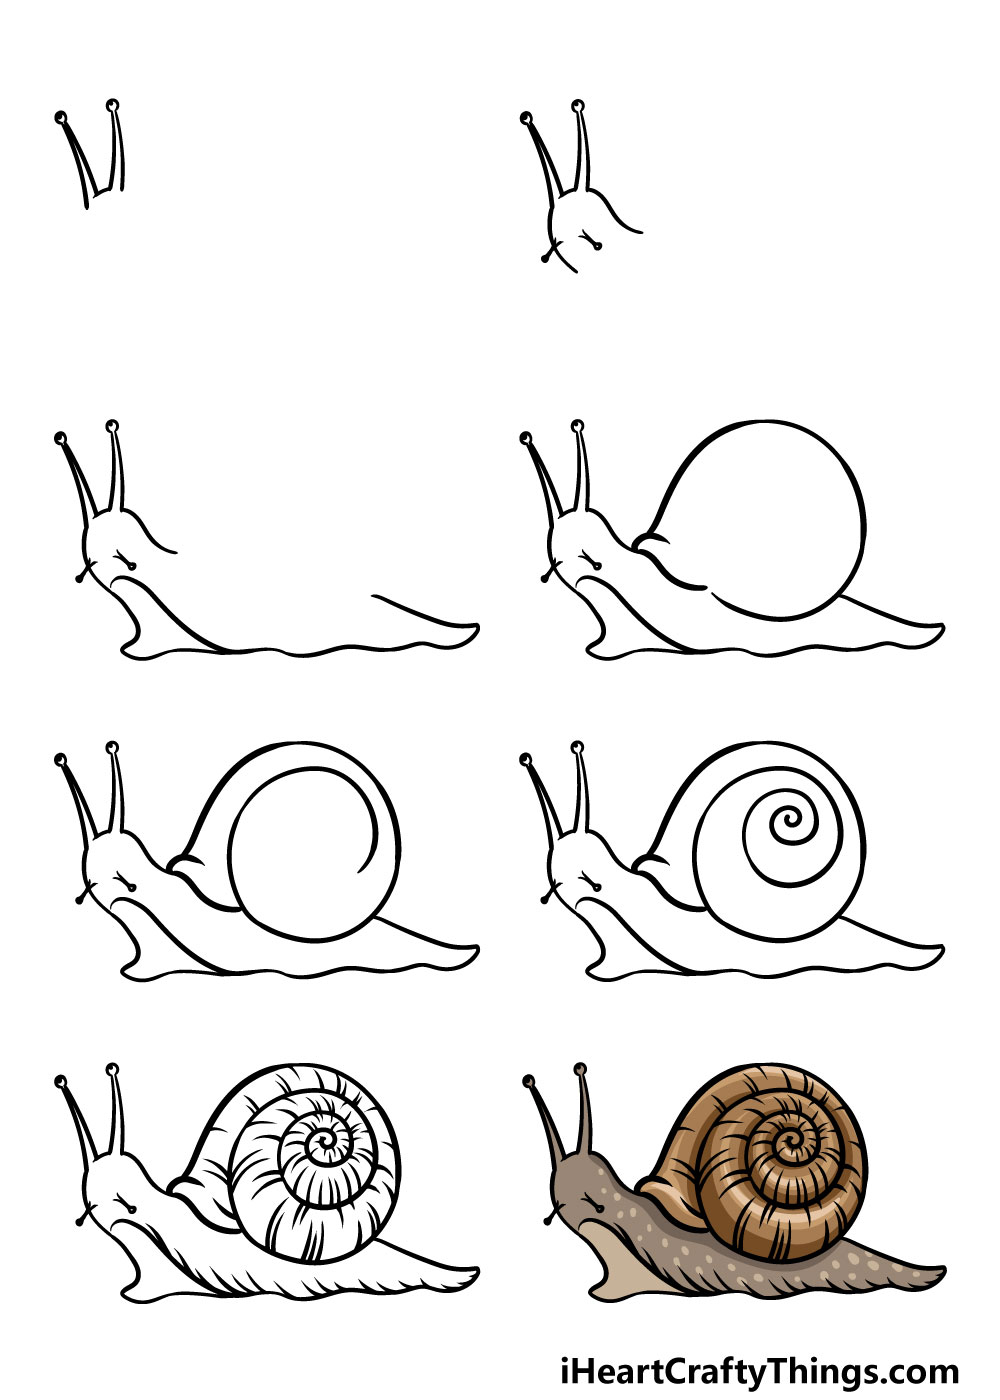 how to draw a snail in 8 steps